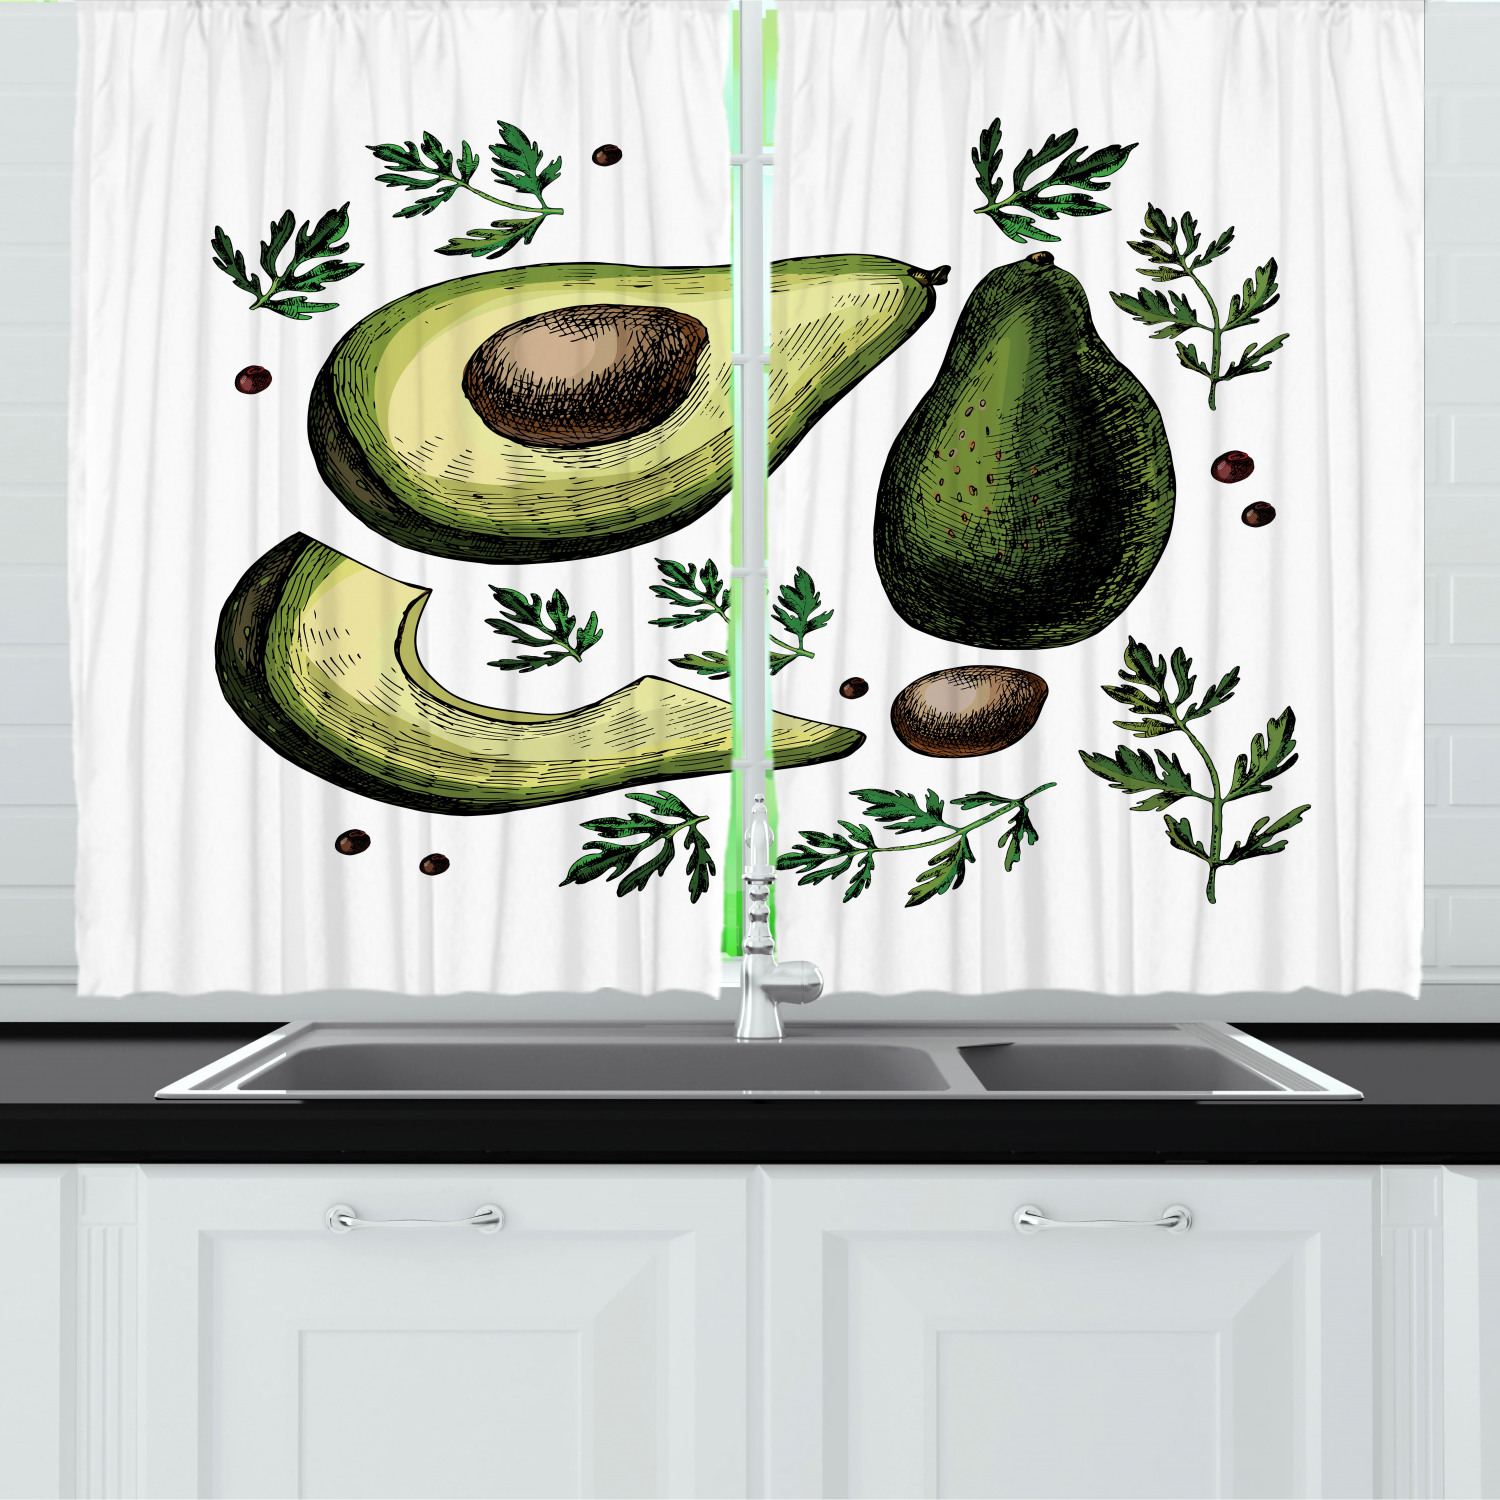 Avocado Curtains 2 Panels Set Retro Style Hand Drawn Doodle Image Of Tropical Foliage And Fruit Elements Theme Window Drapes For Living Room Bedroom 55w X 39l Inches Multicolor By Ambesonne Walmart Com